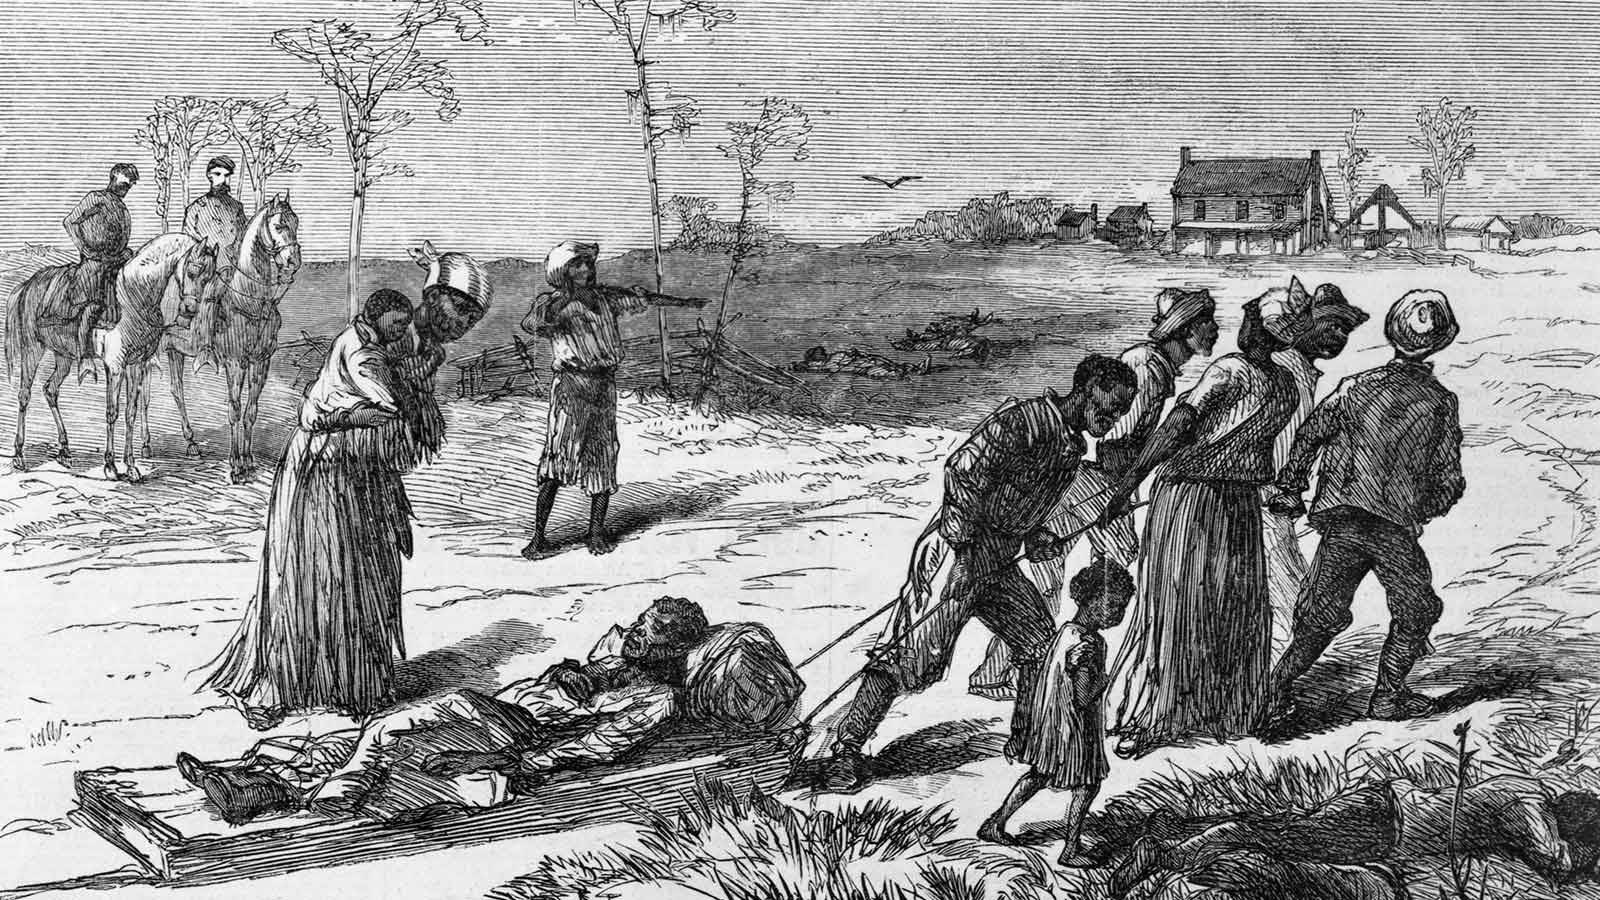 An illustration in Harper's Weekly on May 10, 1873, depicts Black people gathering dead and wounded from the Colfax massacre in Louisiana.